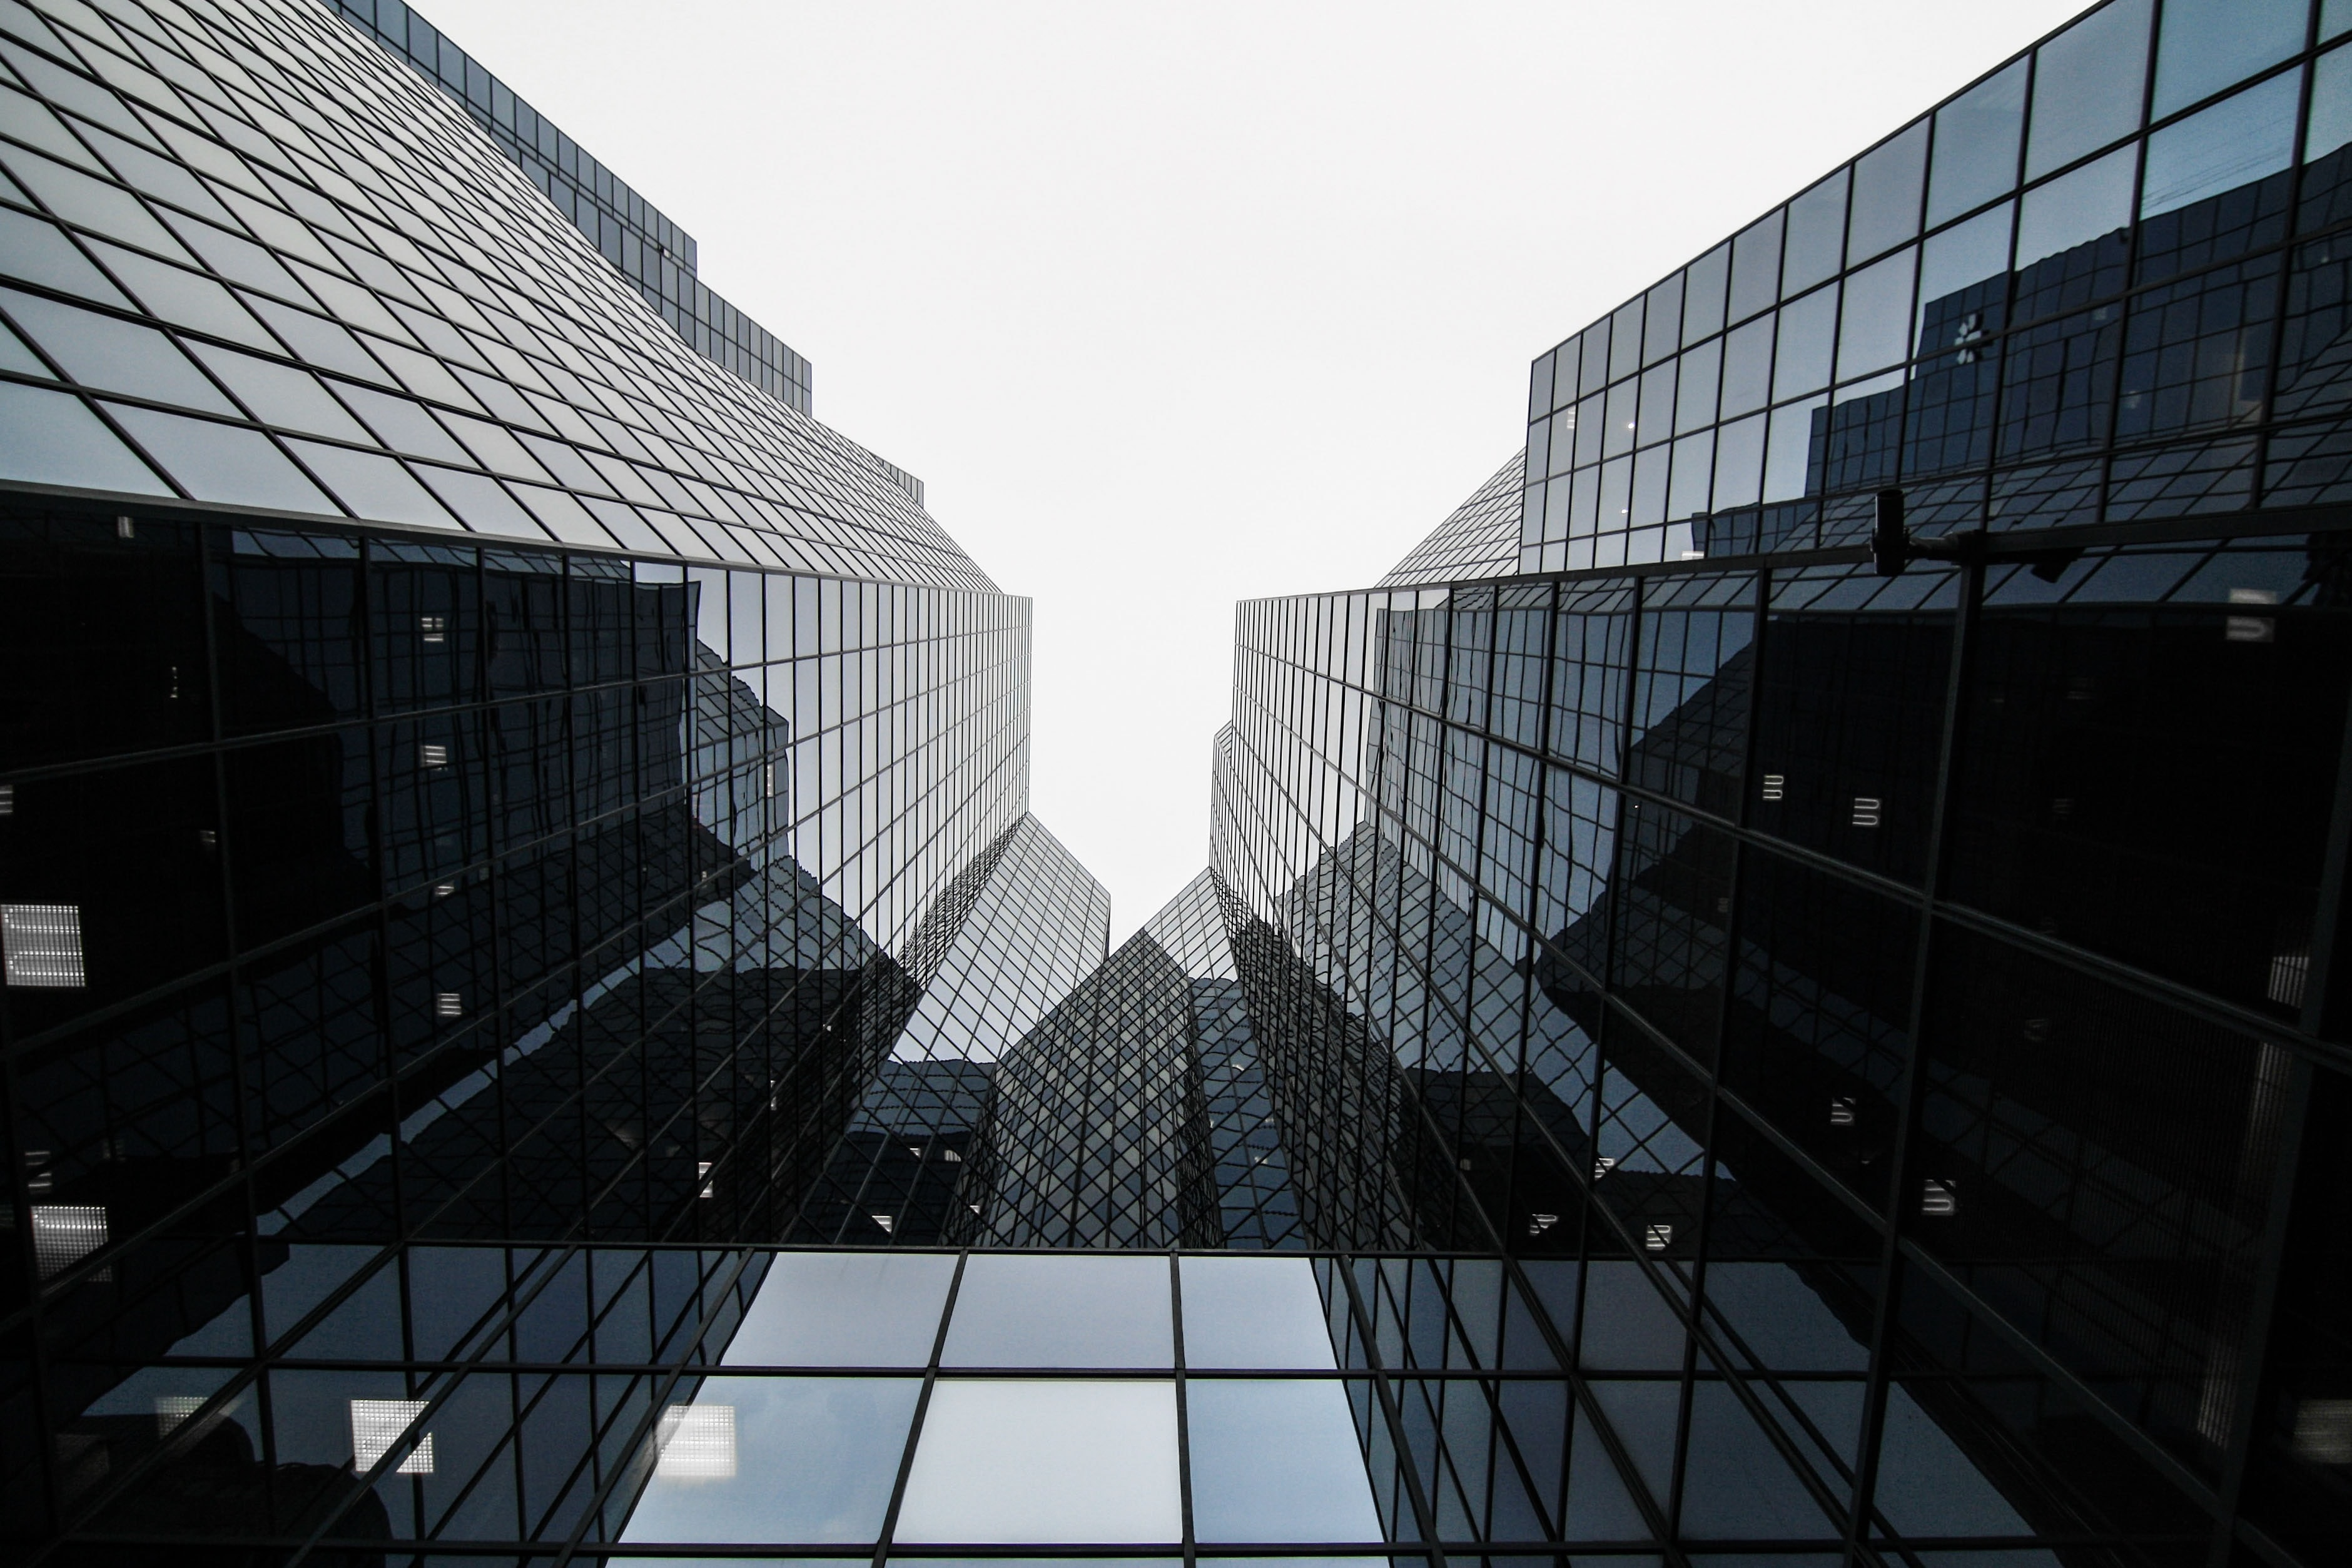 A low-angle shot of the reflective glass facade of a skyscraper in Montreal